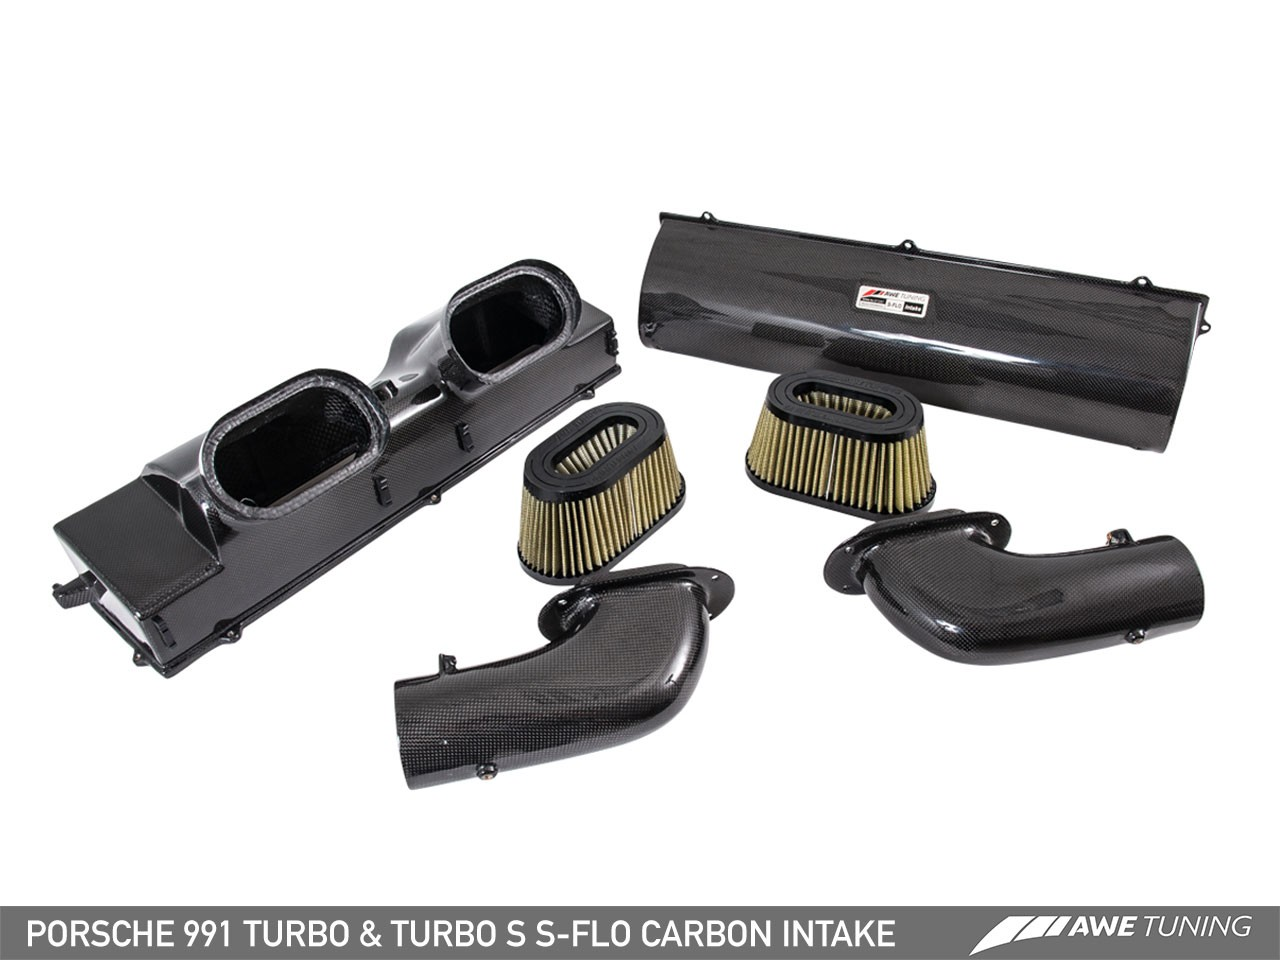 AWE S-FLO Carbon Intake for Porsche 991.1 / 991.2 Turbo and Turbo S